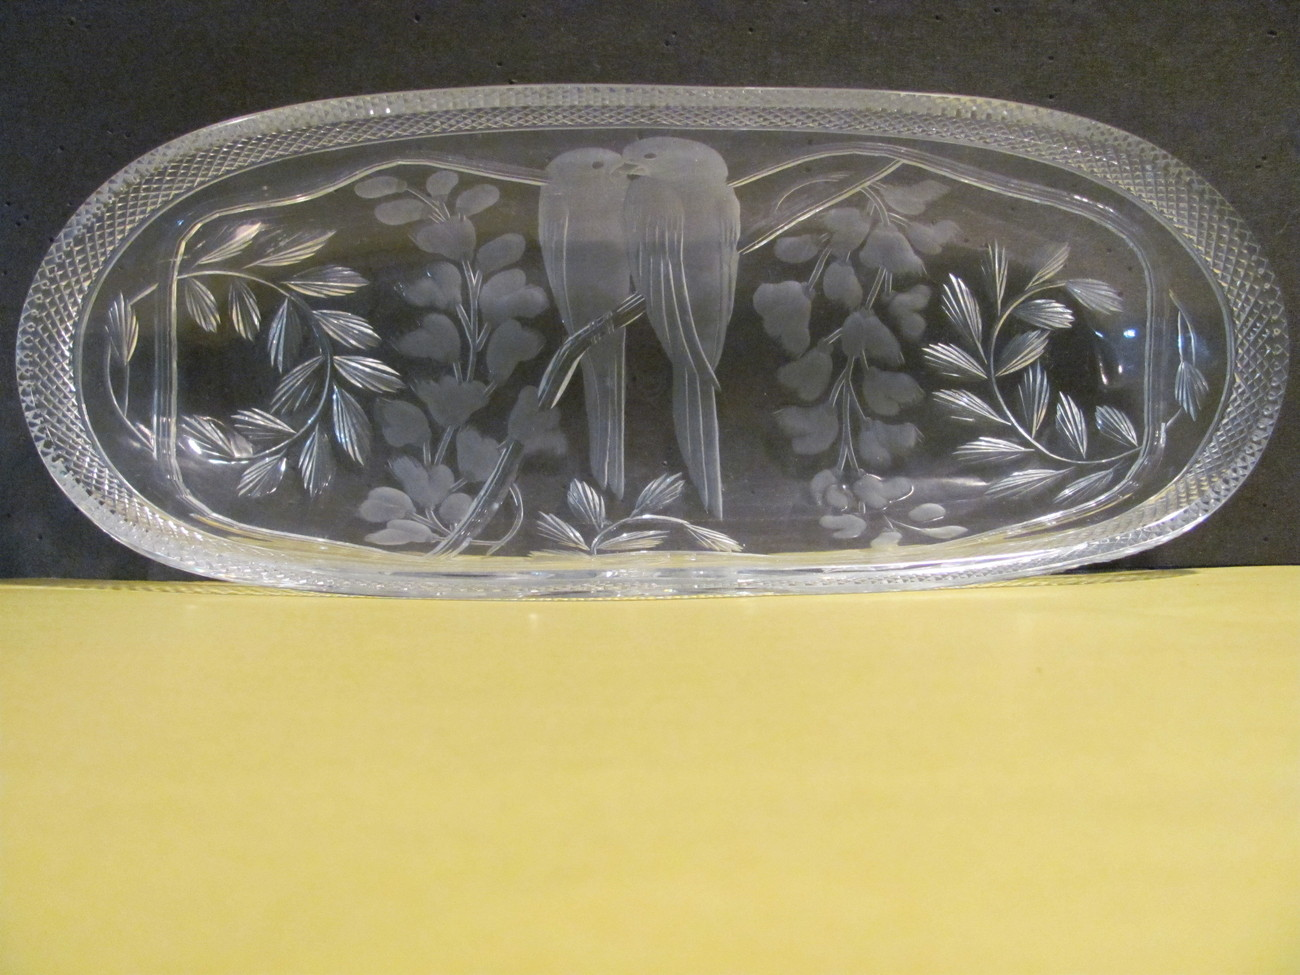 Libbeys-Lovebirds-Celery Dish-Antique